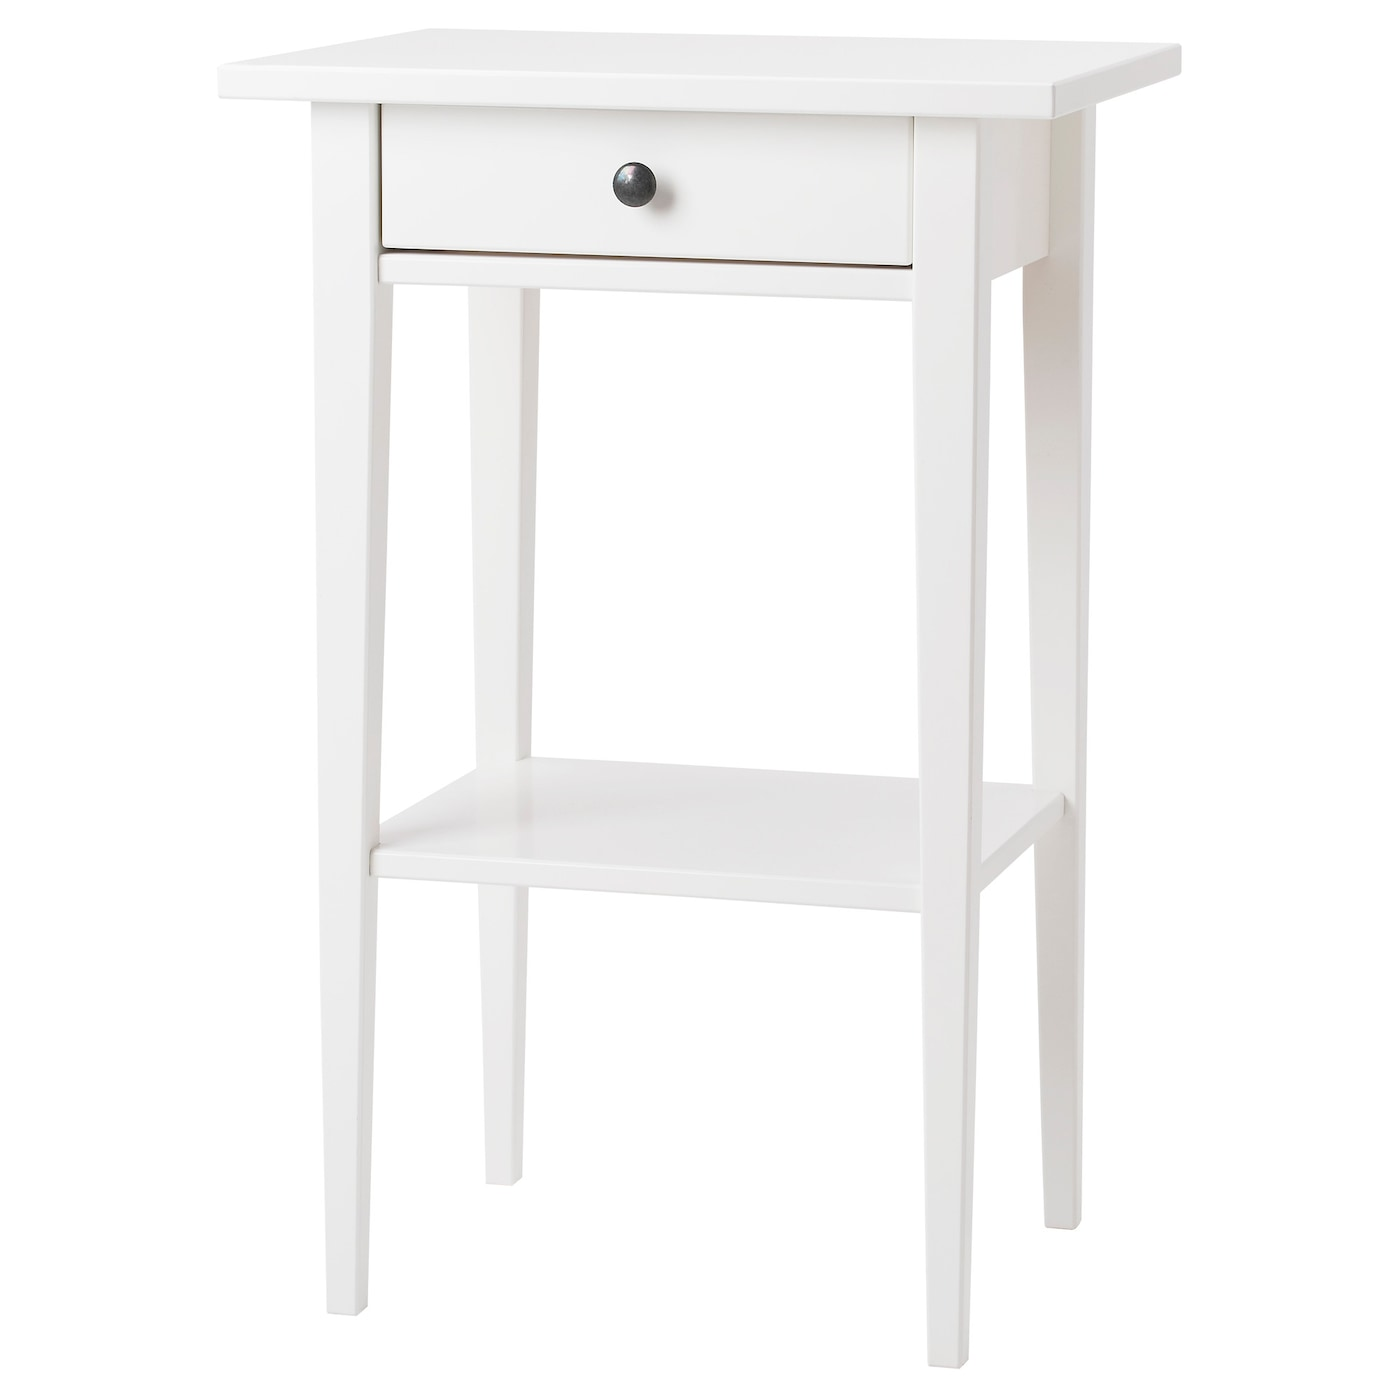 Hemnes Coffee Table White Stain 118x75 Cm: HEMNES Bedside Table White 46 X 35 Cm